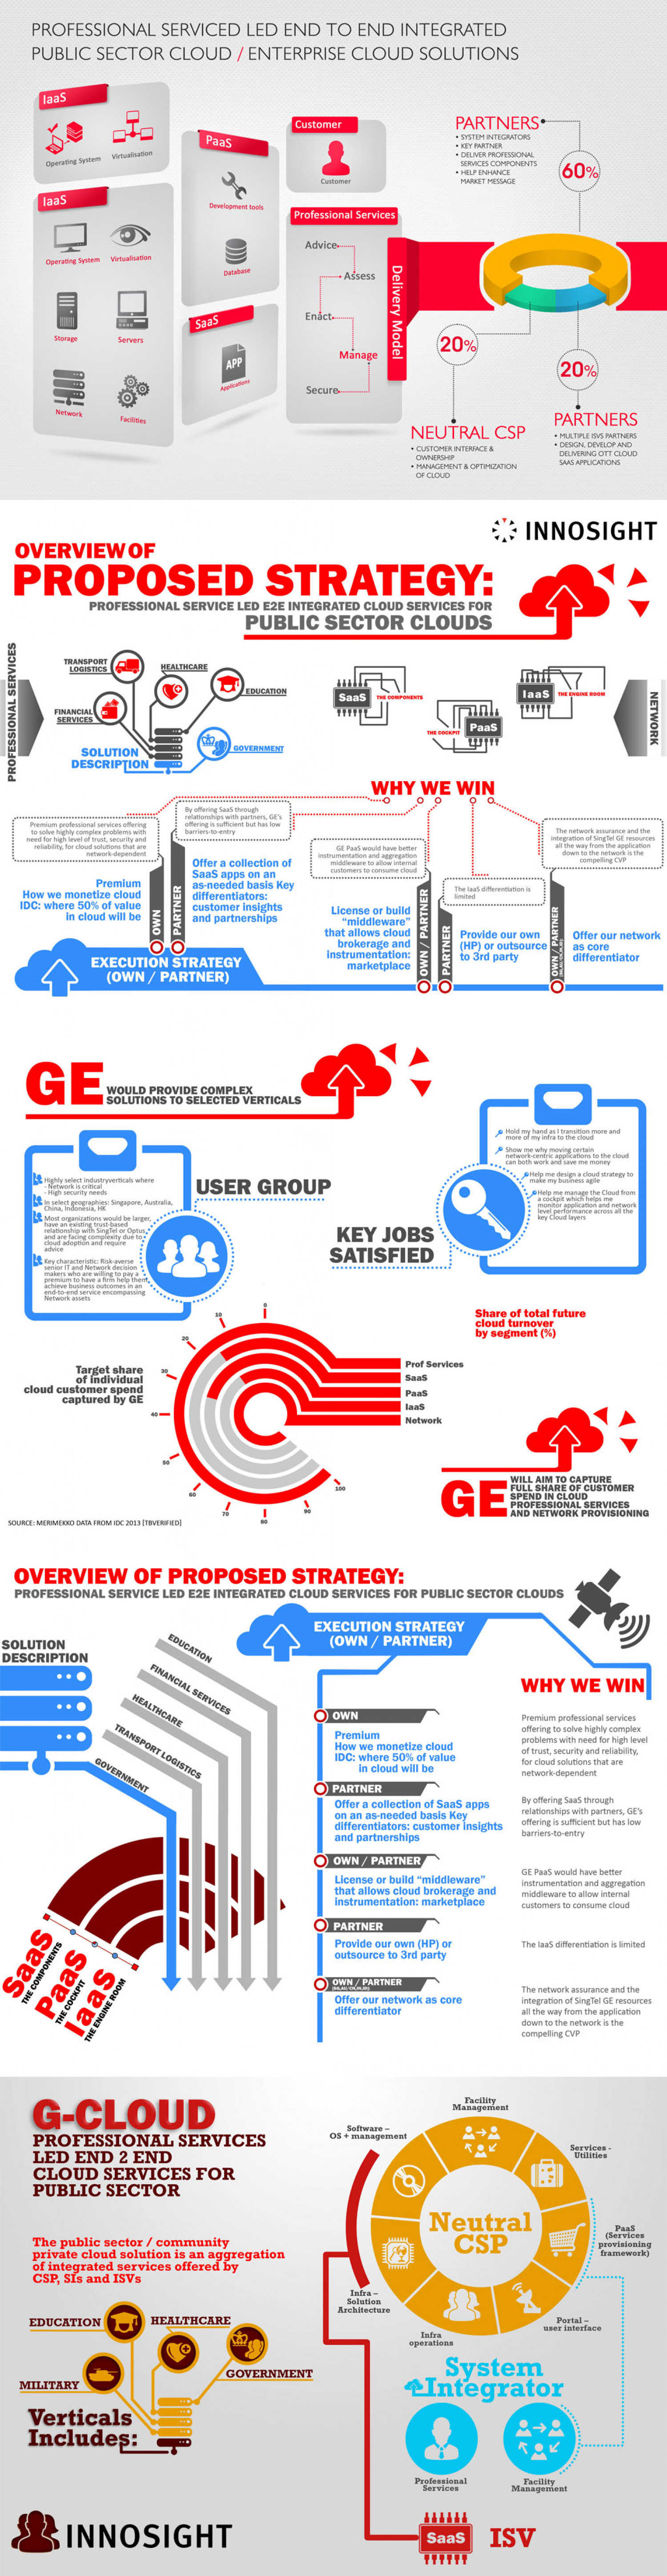 Concept card on G-Cloud  Infographic